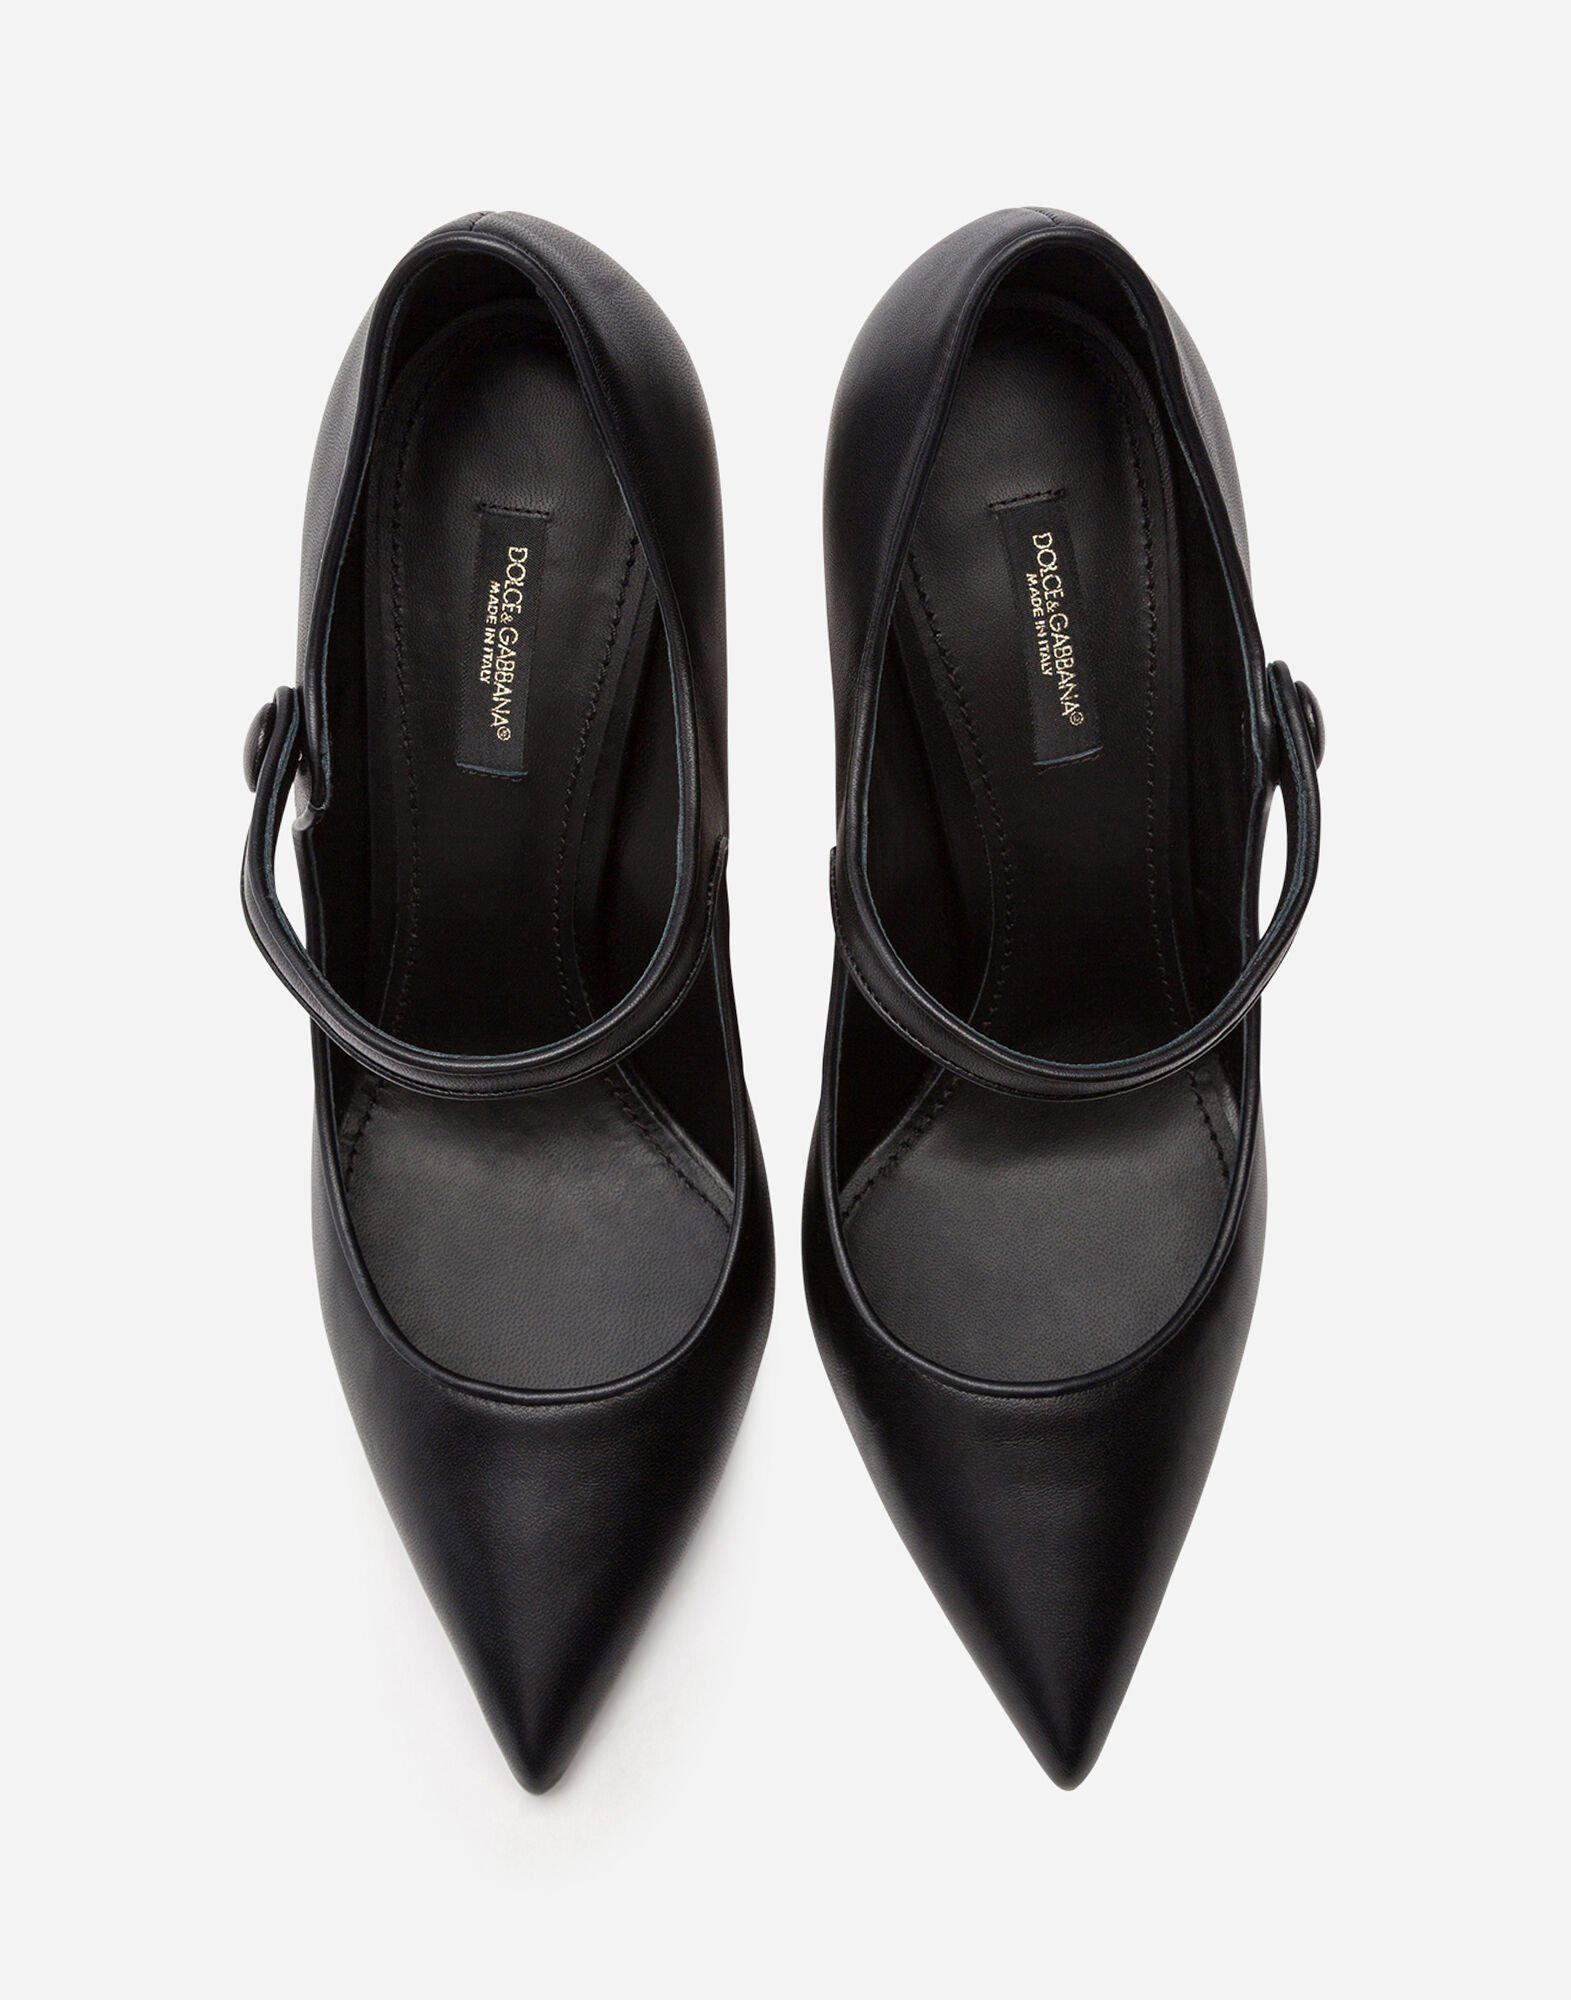 Nappa leather Mary Jane with baroque D&G heel 3